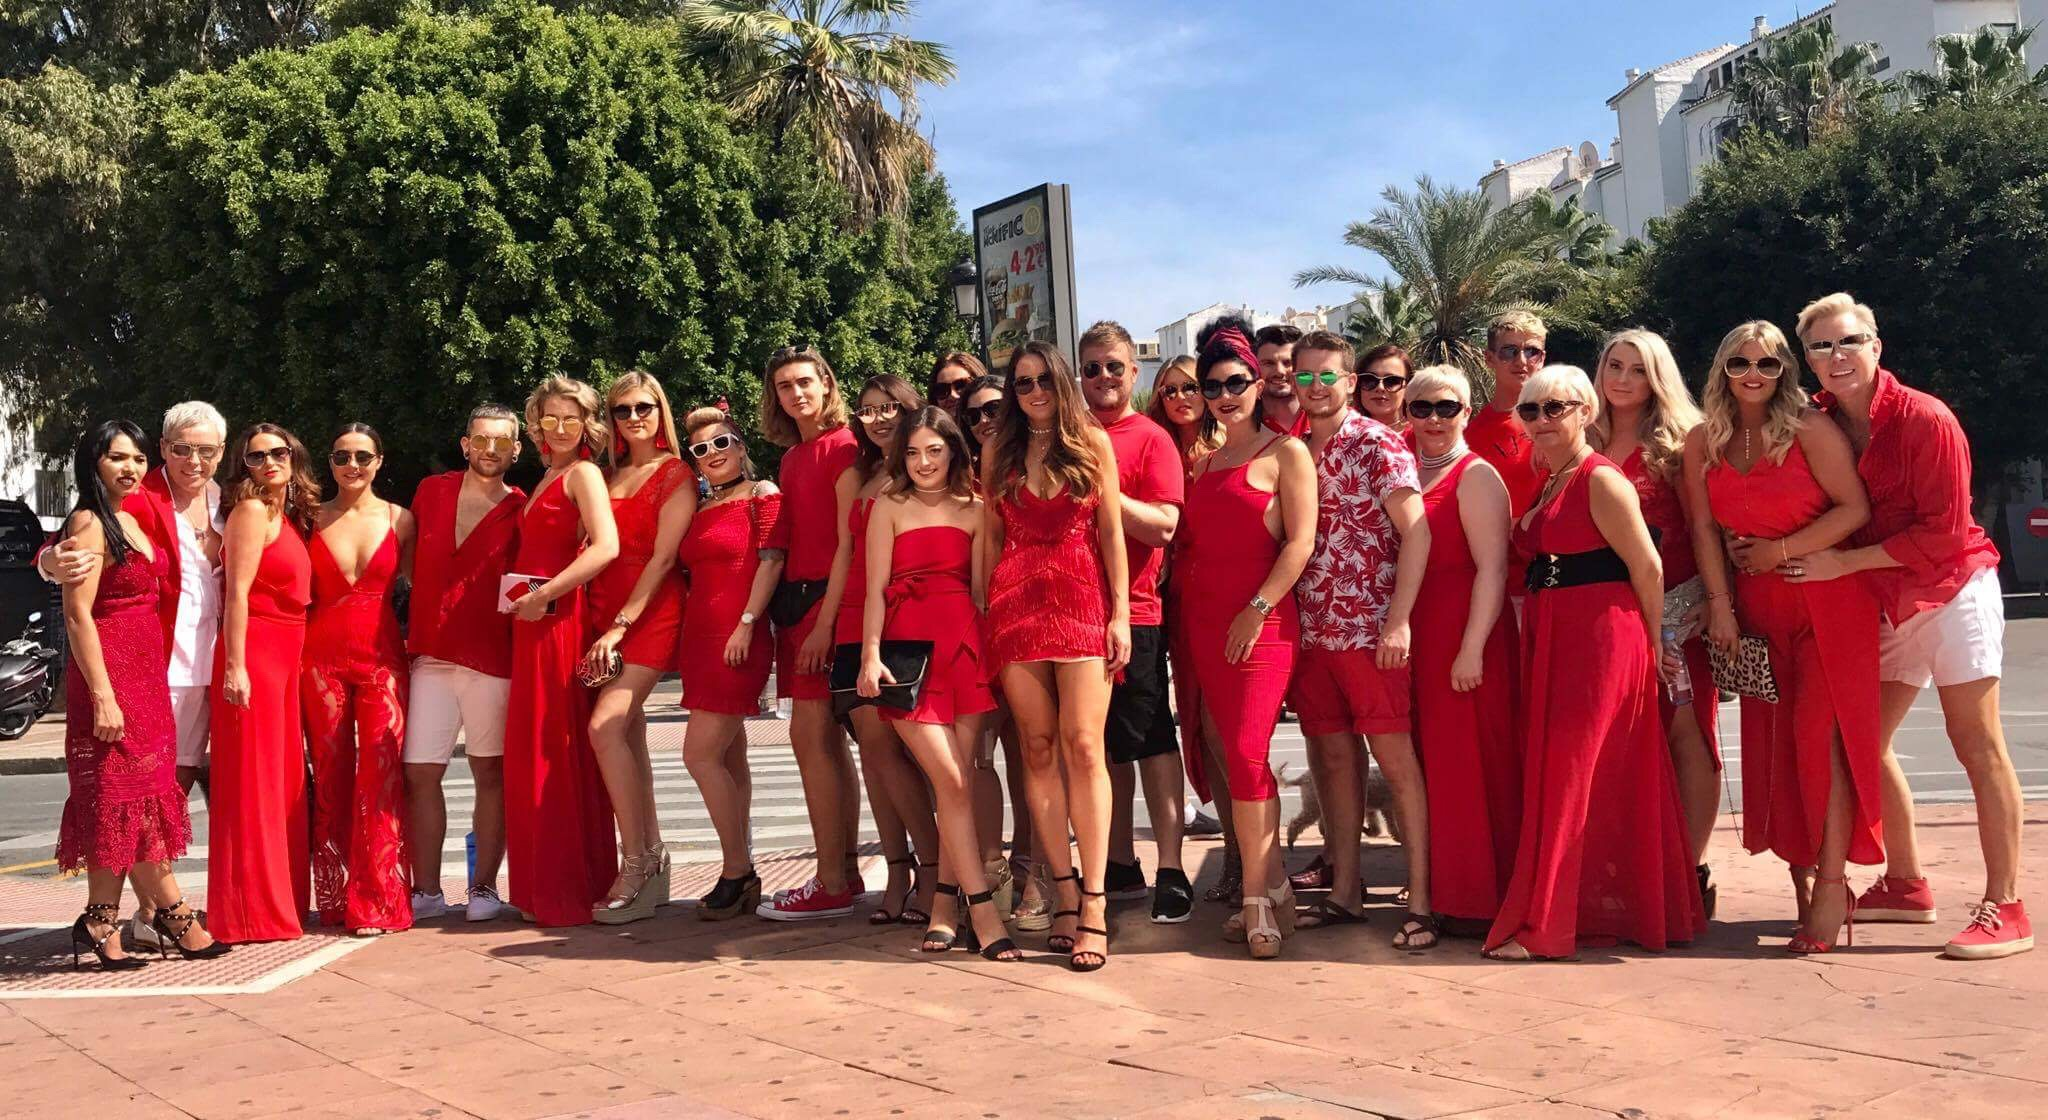 ROYSTON BLYTHE TEAM HEAD TO MARBS TO CELEBRATE ROSYTON STYLE